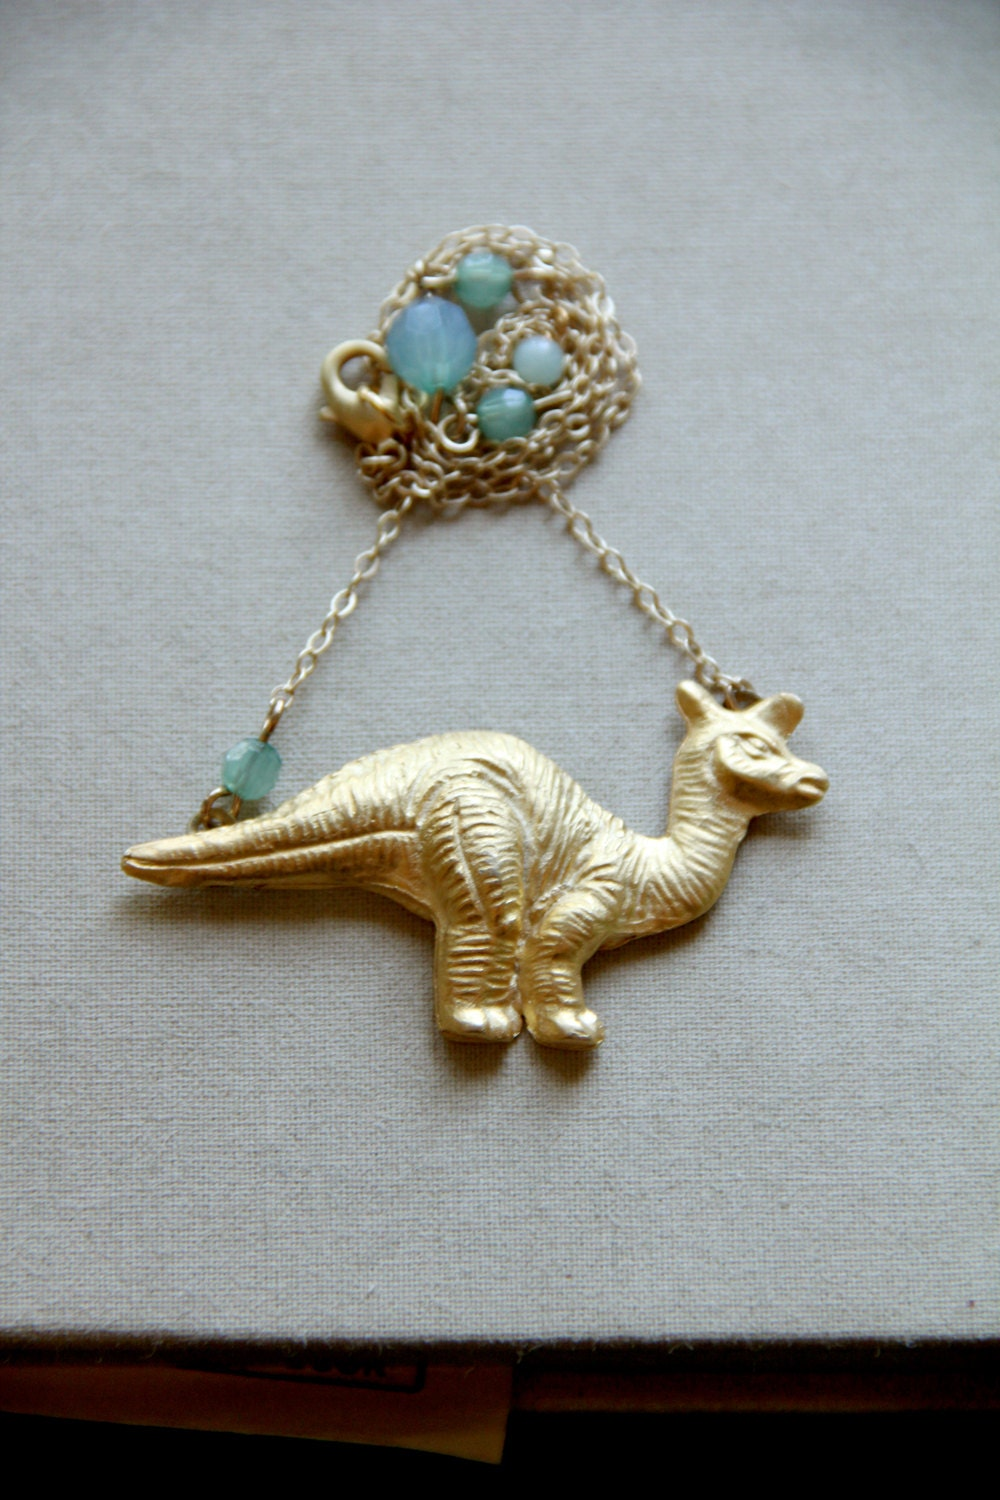 Herbivore - Vintage Dinosaur Brooch Necklace